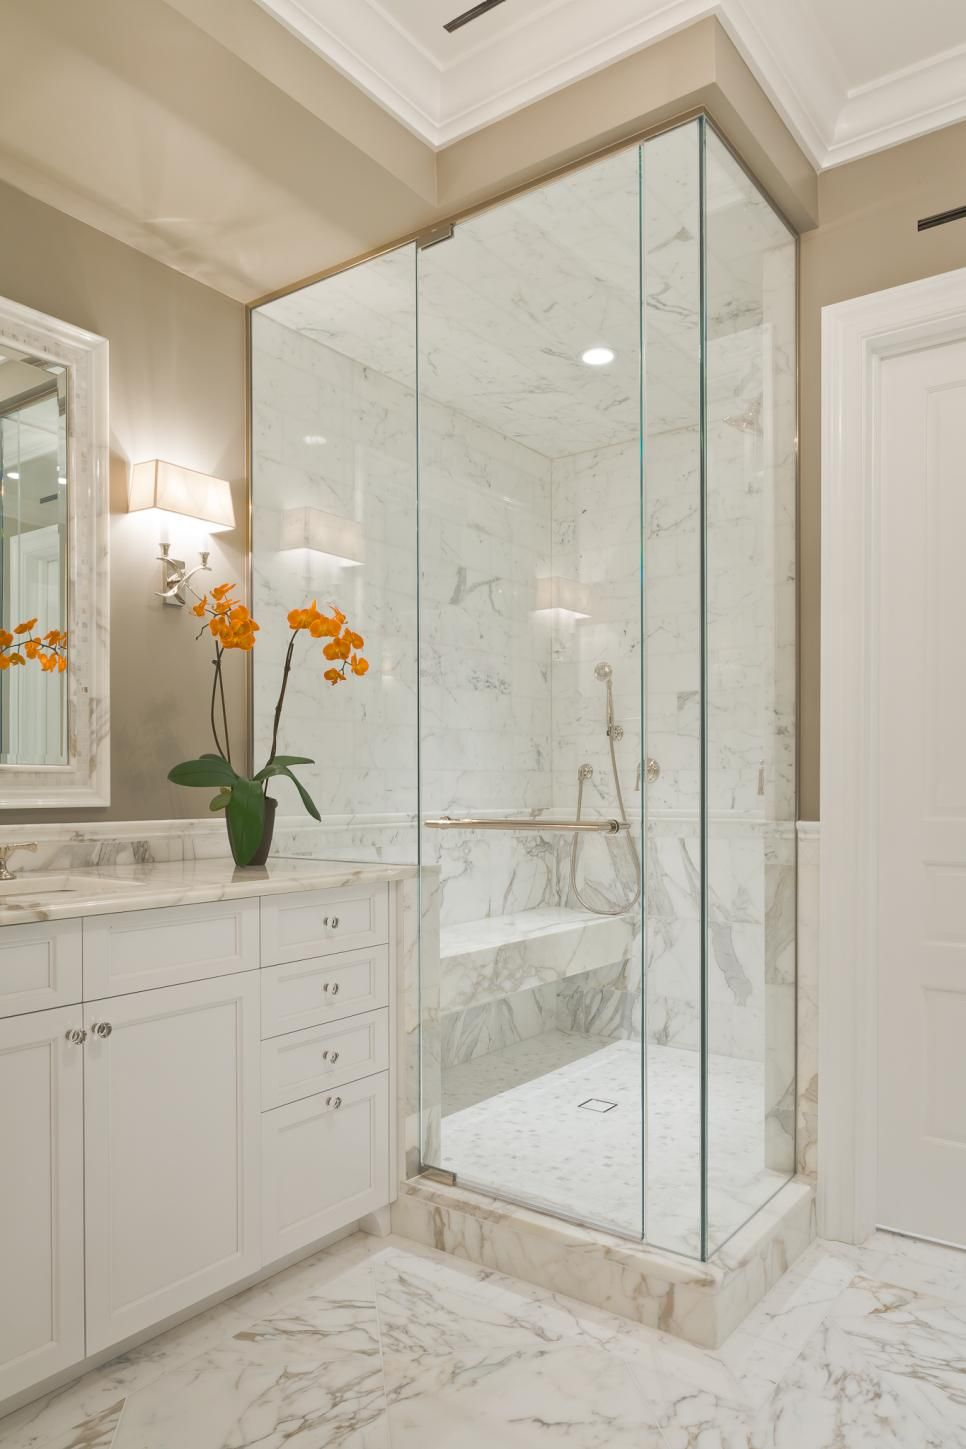 How Much Do Remodels Cost Glass Shower Add A Bathroom Marble